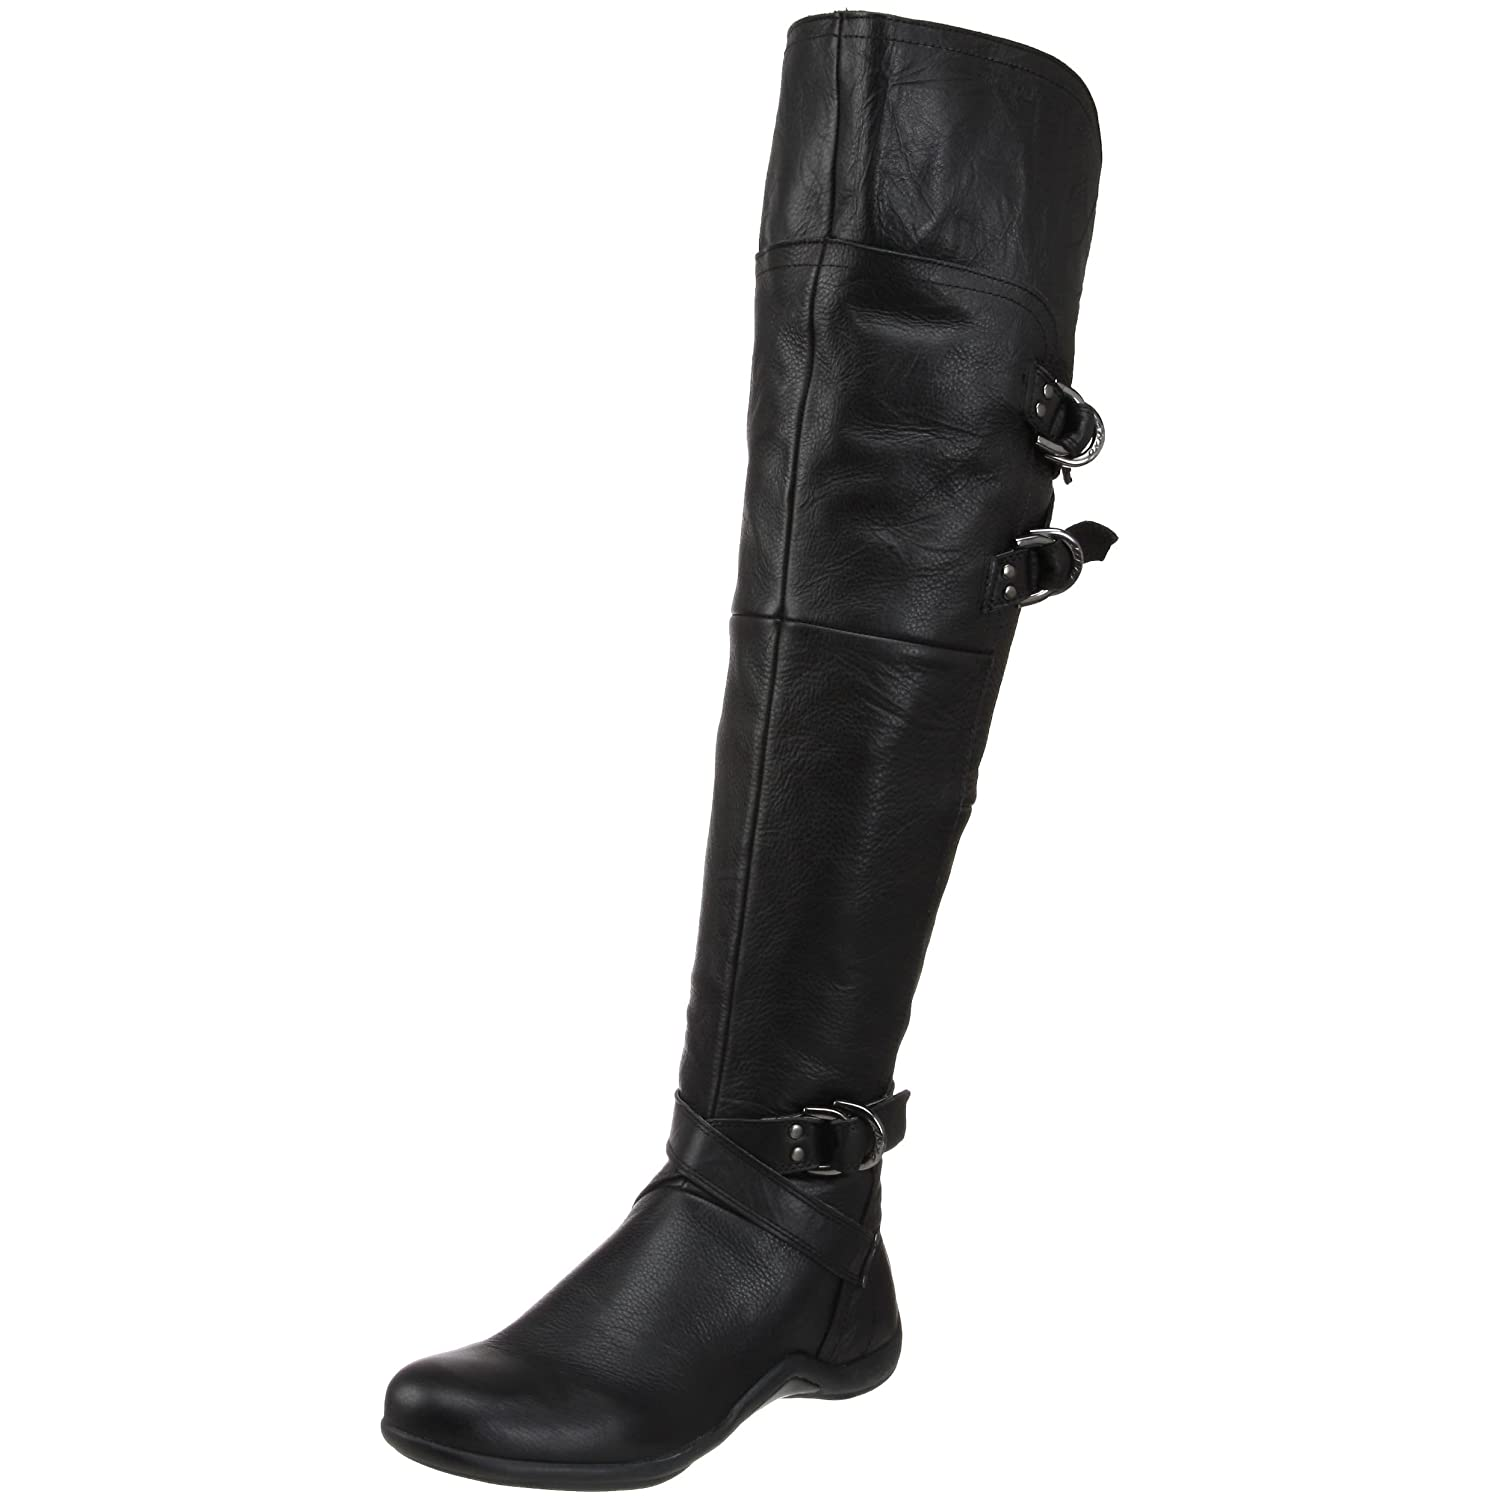 DKNY - Women's Audrey Over-the-Knee Boot from endless.com